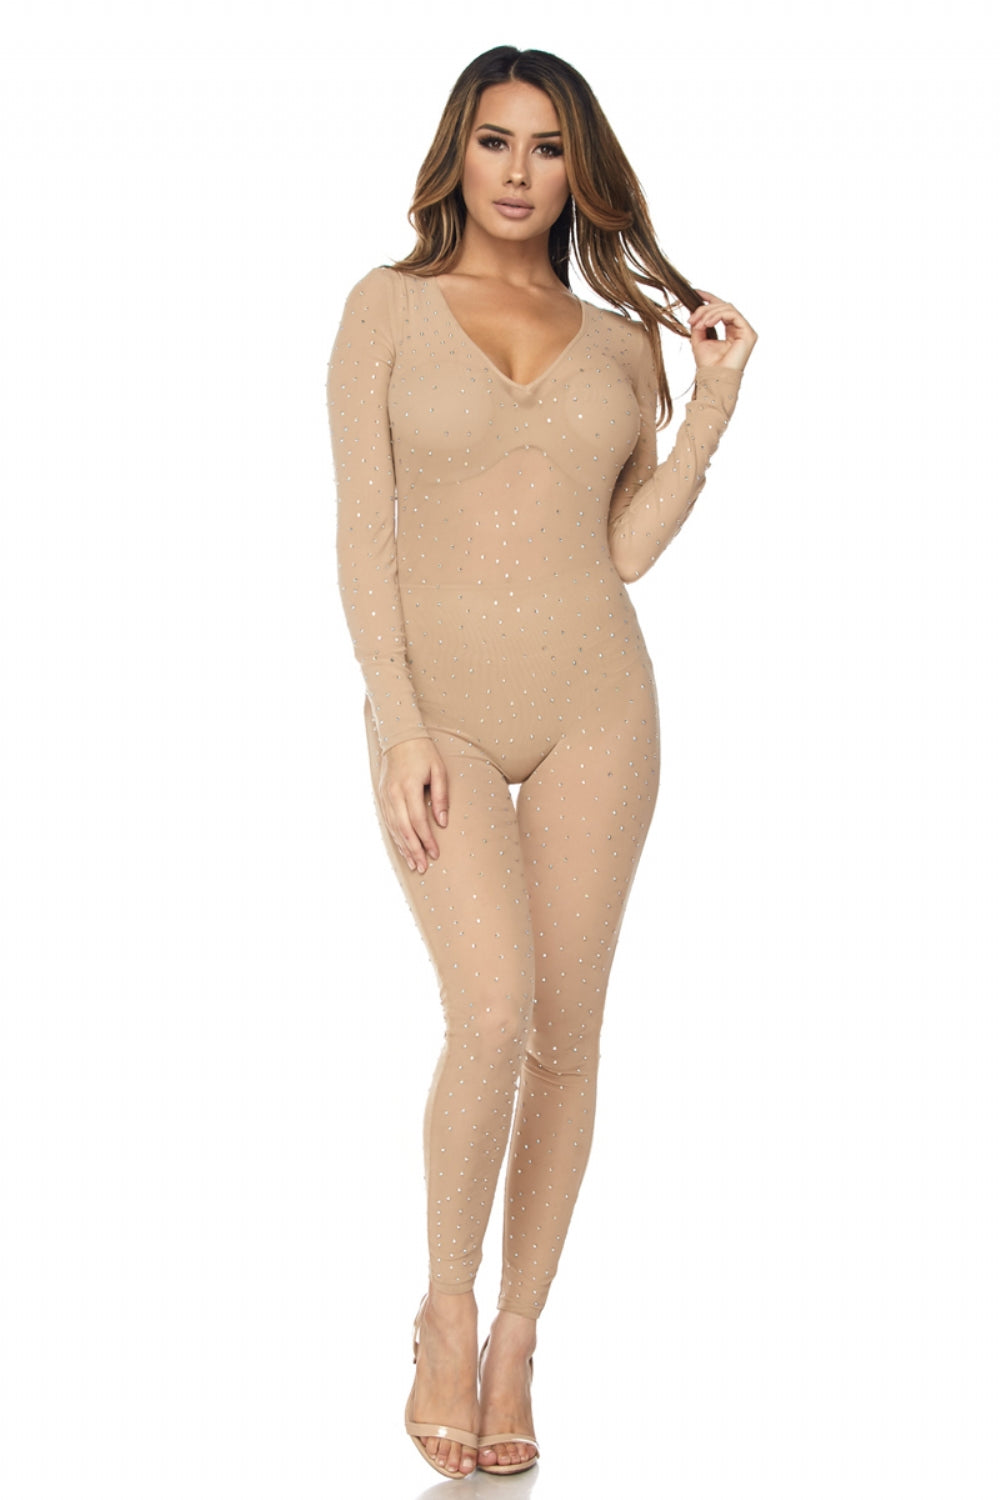 Rhinestone studded jumpsuit - PlaythingsMiami